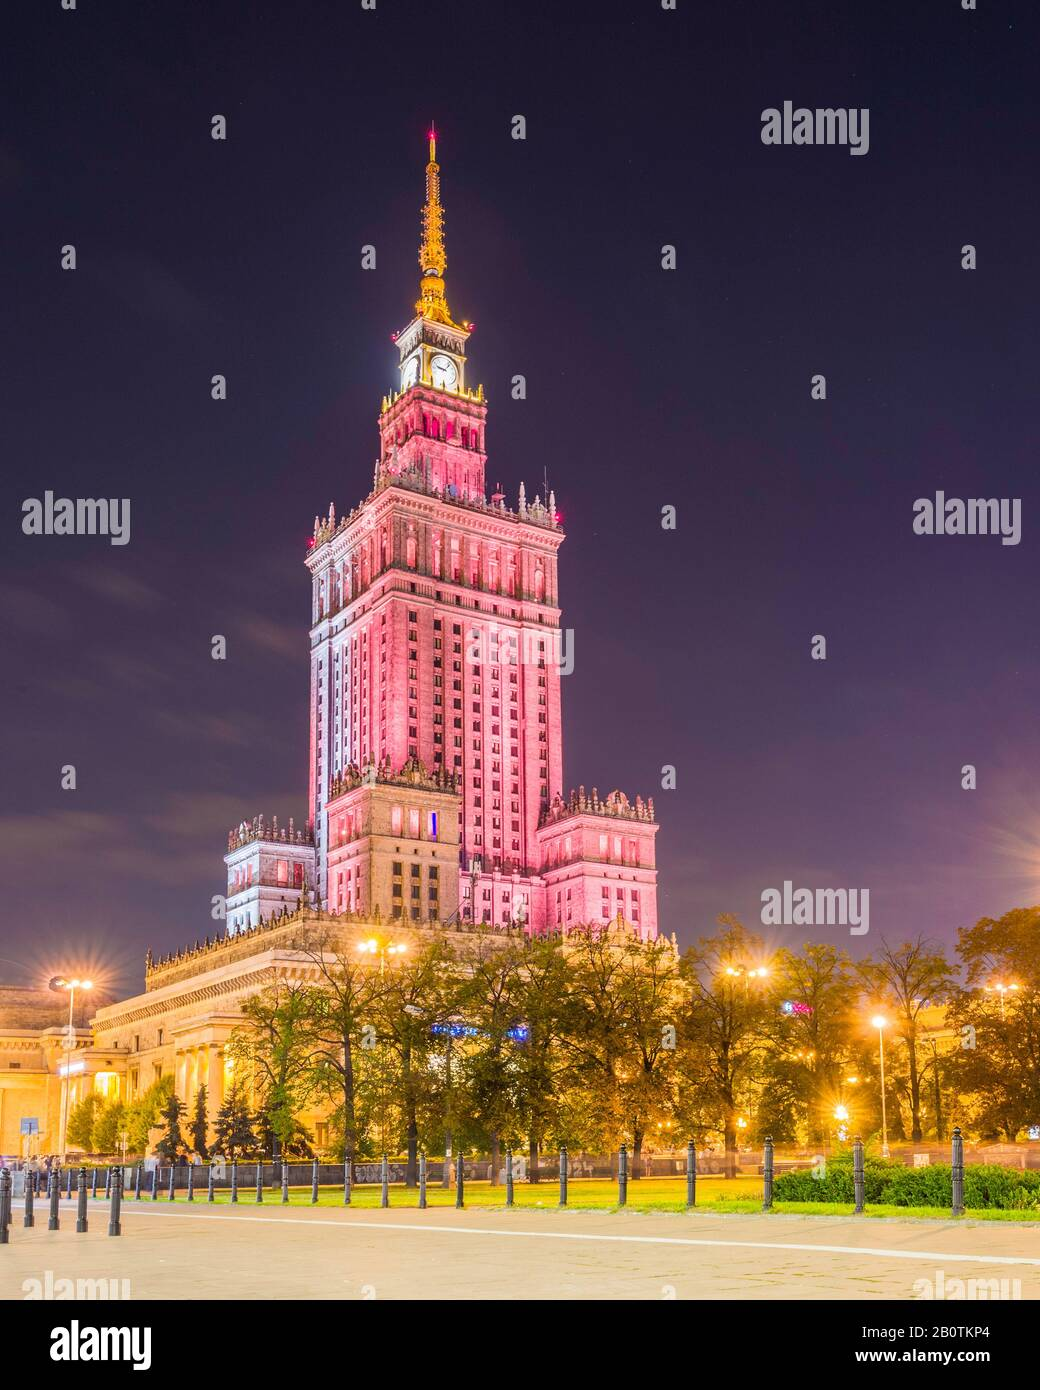 Illuminated at night, the Palace of Culture and Science (1955) is a Soviet designed skyscraper in central Warsaw, Poland. Stock Photo